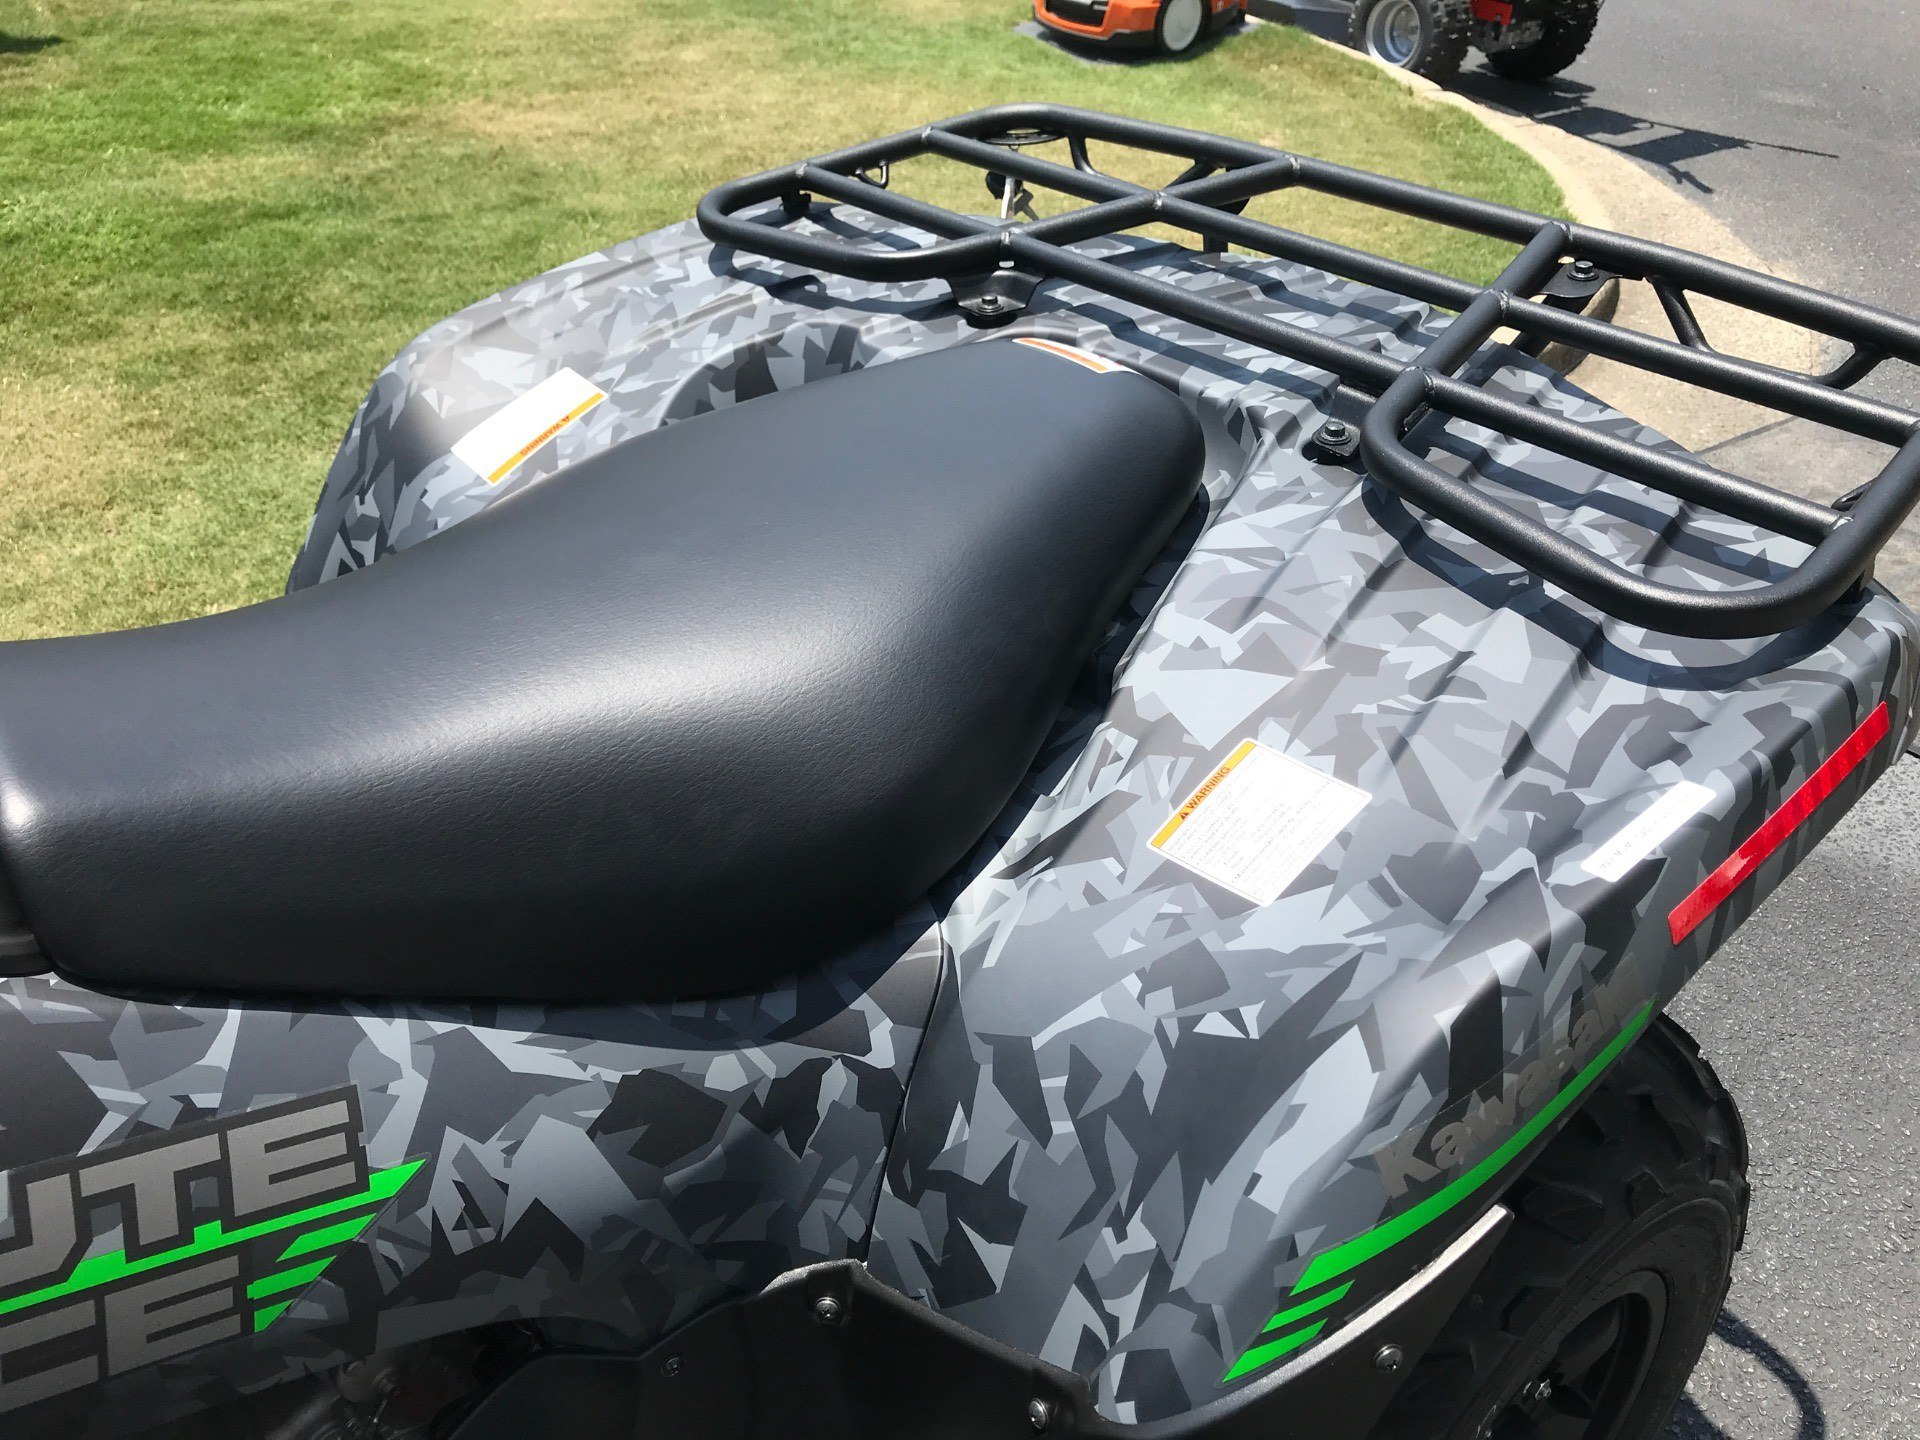 2021 Kawasaki Brute Force 750 4x4i EPS in Greenville, North Carolina - Photo 17